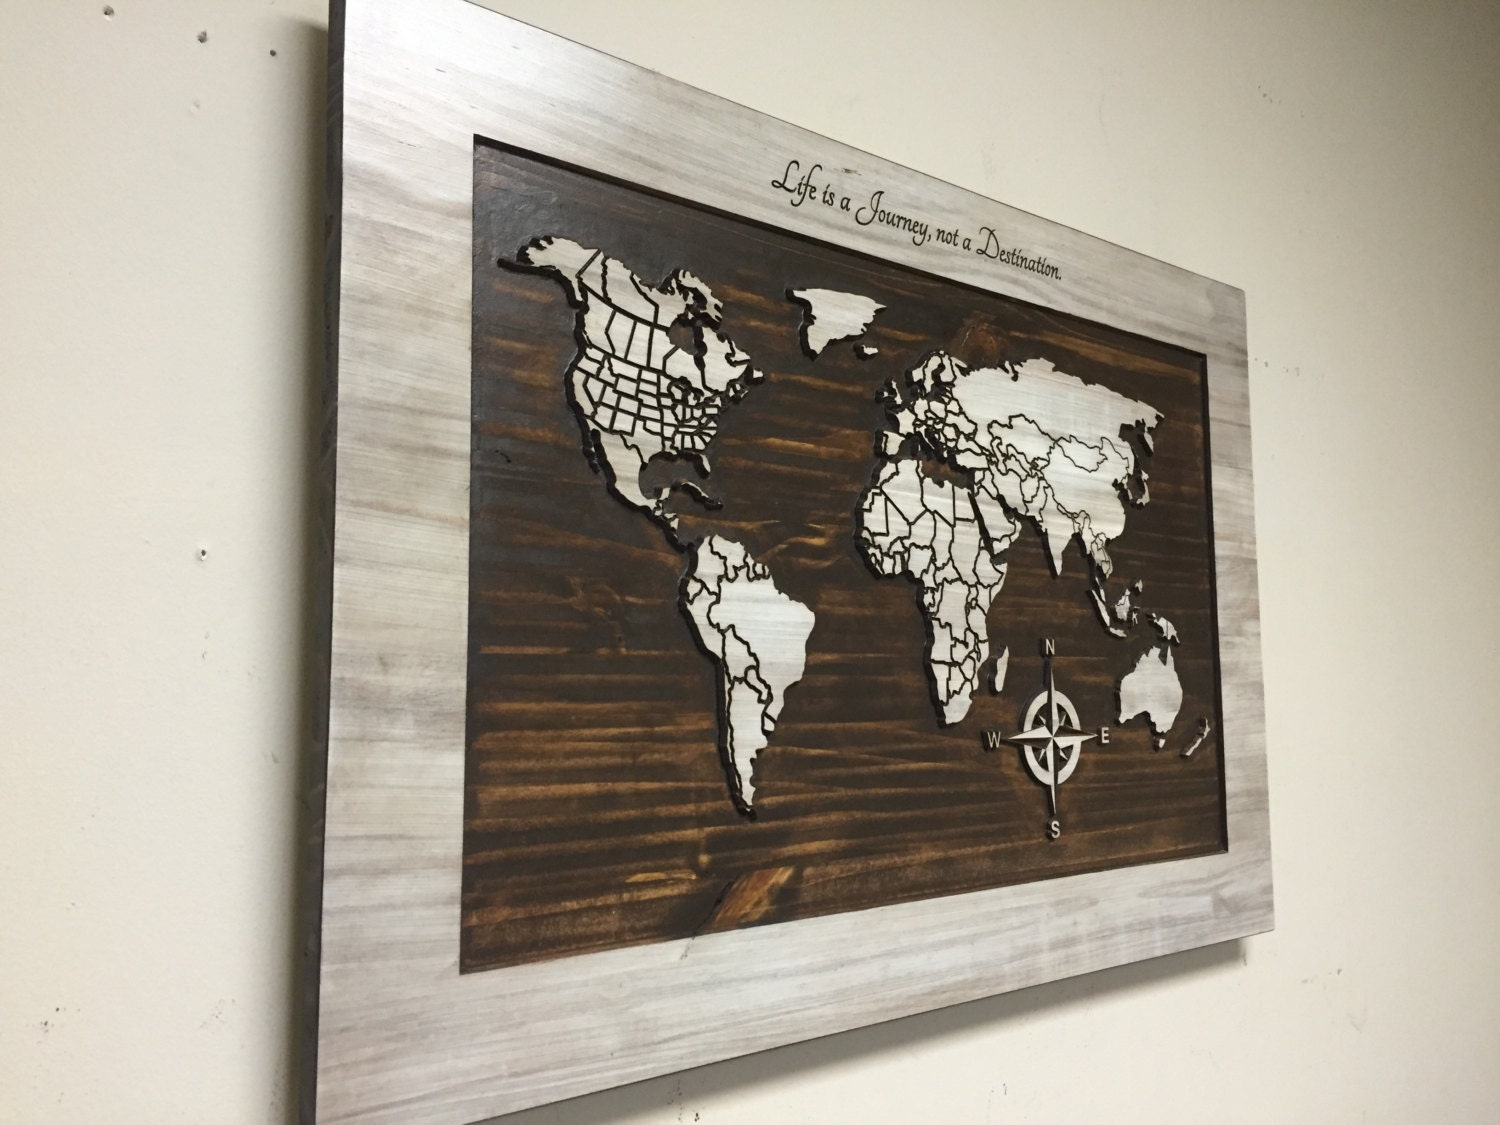 World Map Wall Decor Wood : Wood wall art carved world map home decor wooden life is a